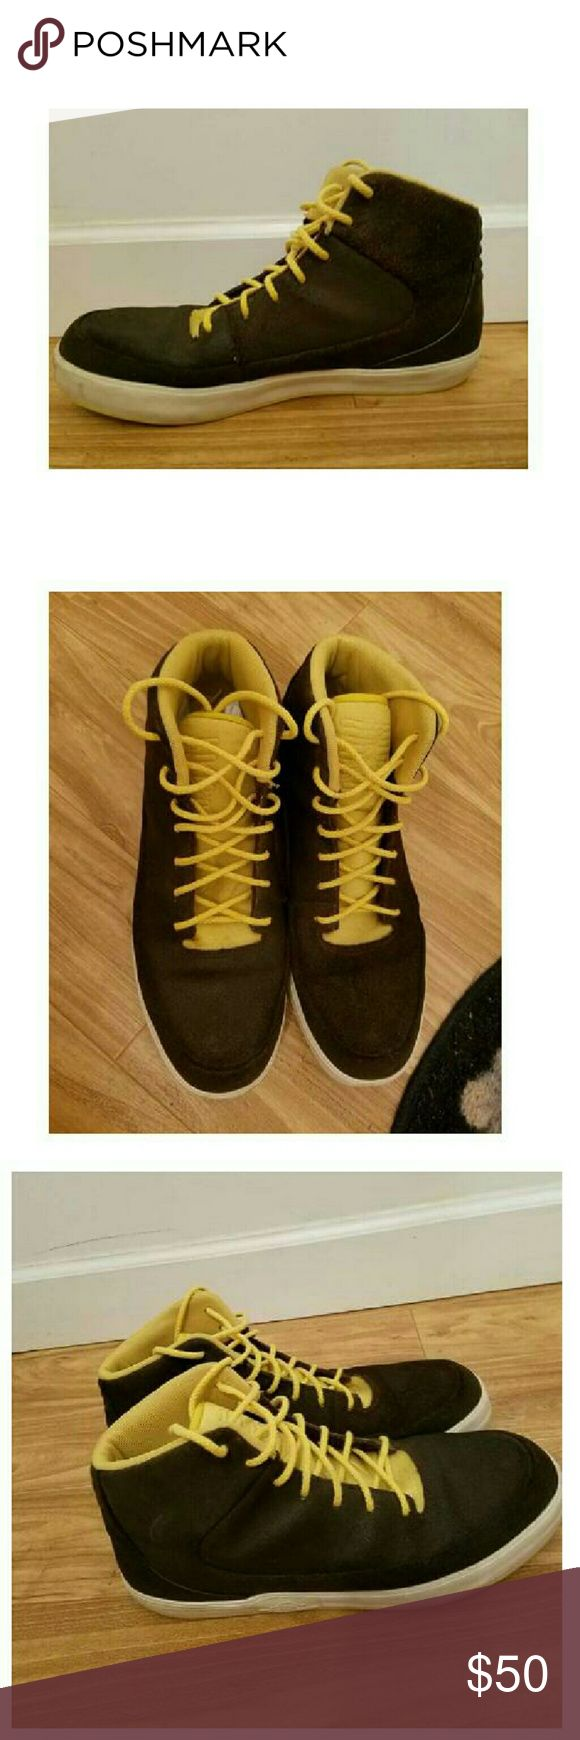 NIKE AIR JORDAN DARK BROWN  SHOES BRAND: AIR JORDAN SIZE: (10.5 MEN) COLOR: DARK BROWN EXTERIOR WITH YELLOW INTERIOR AND STRING CONDITION: PRE-OWED BUT STILL GREAT IN AND OUT CHECK THE IMAGES ZOOM IF YOU CAN AIr Jordan Shoes Athletic Shoes